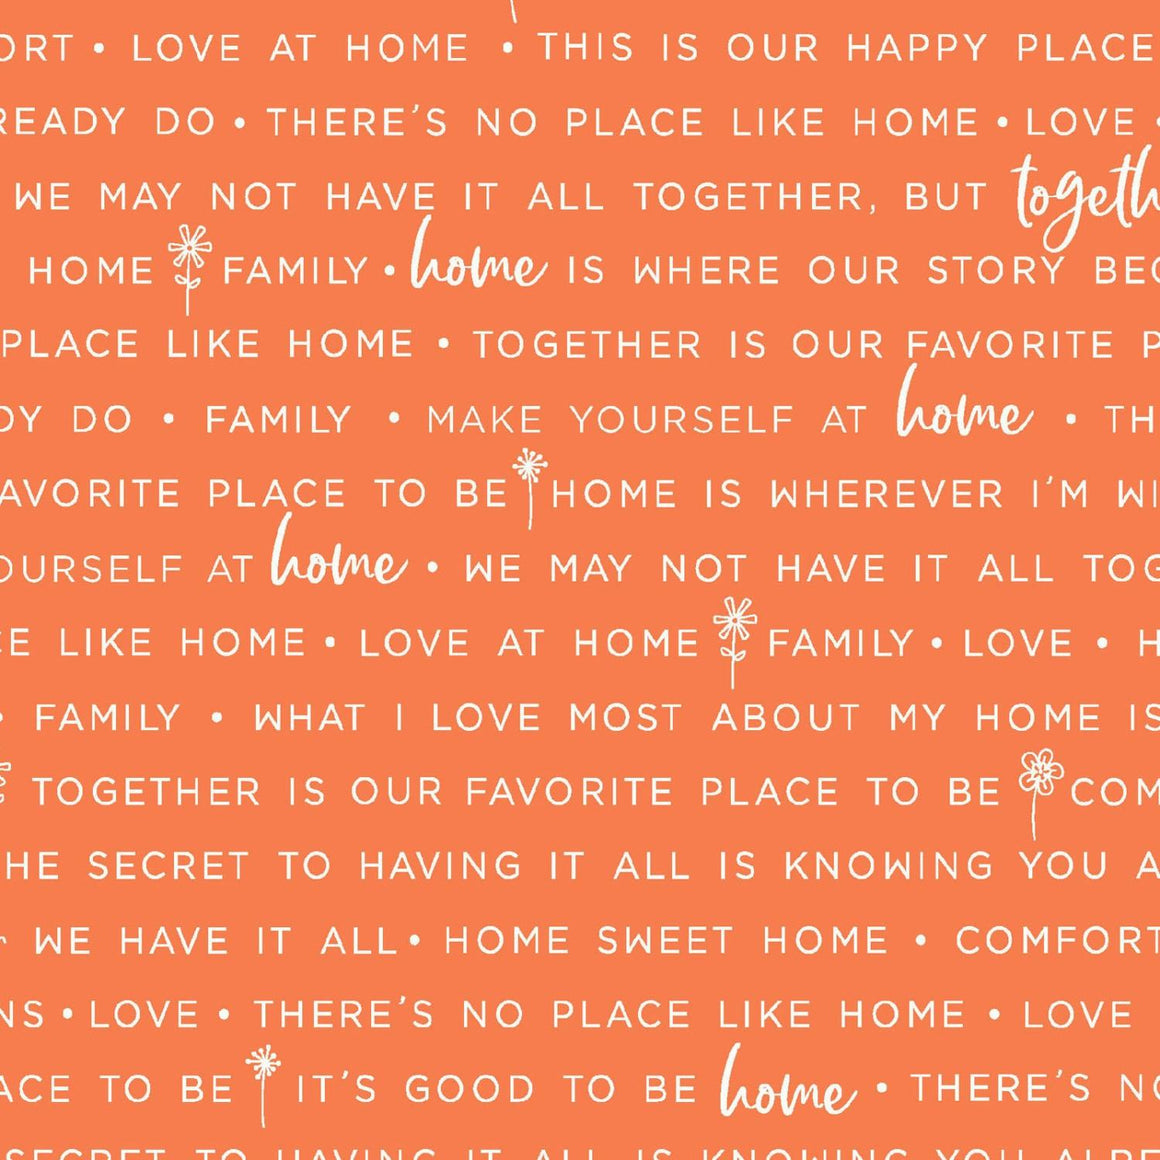 Make Yourself At Home: Home Phrases Orange